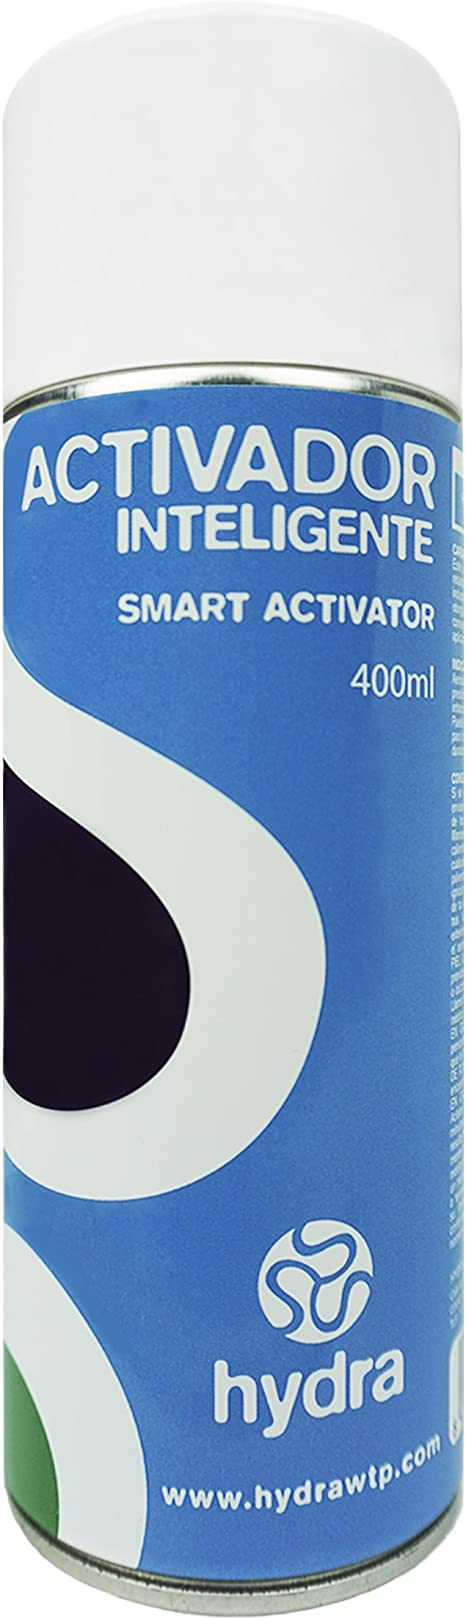 Top Selled And Rated Wassertransferdruck Aktivator Spraydose 400 Ml Hydra Water Transfer Printing For Hydrographics Auto